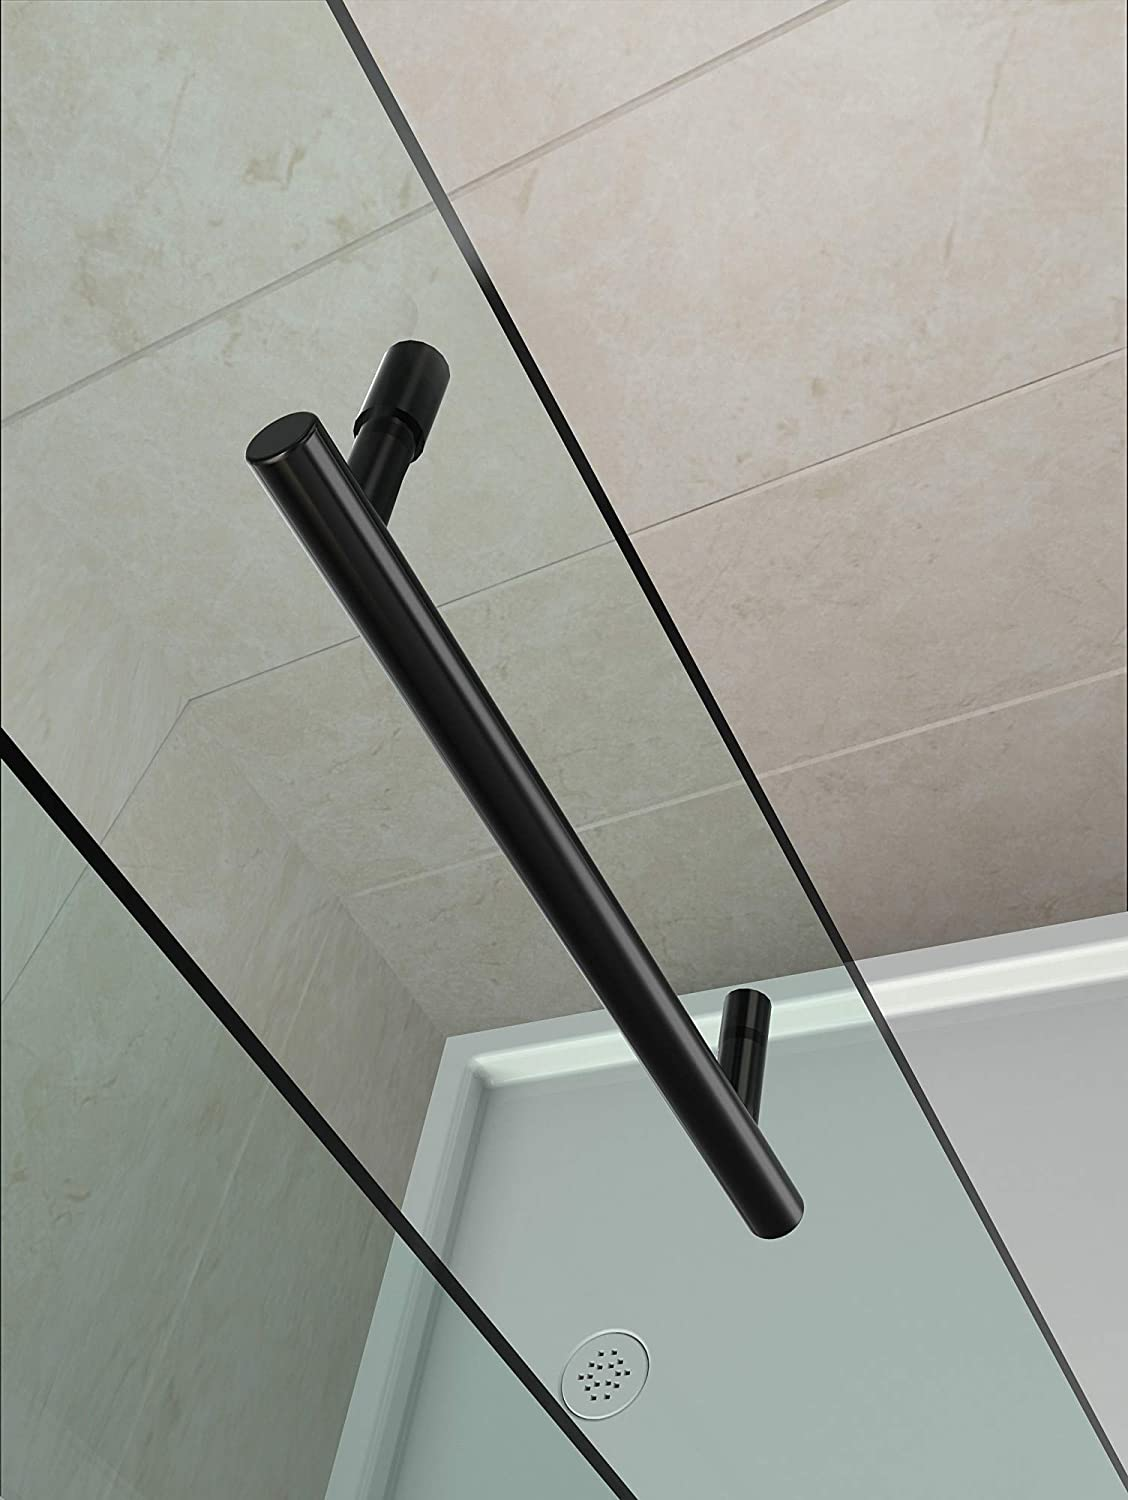 Aston Avalux Gs Completely Frameless Shower Enclosure With Glass Shelves 48 X 36 X 72 Oil Rubbed Bronze Amazon Com